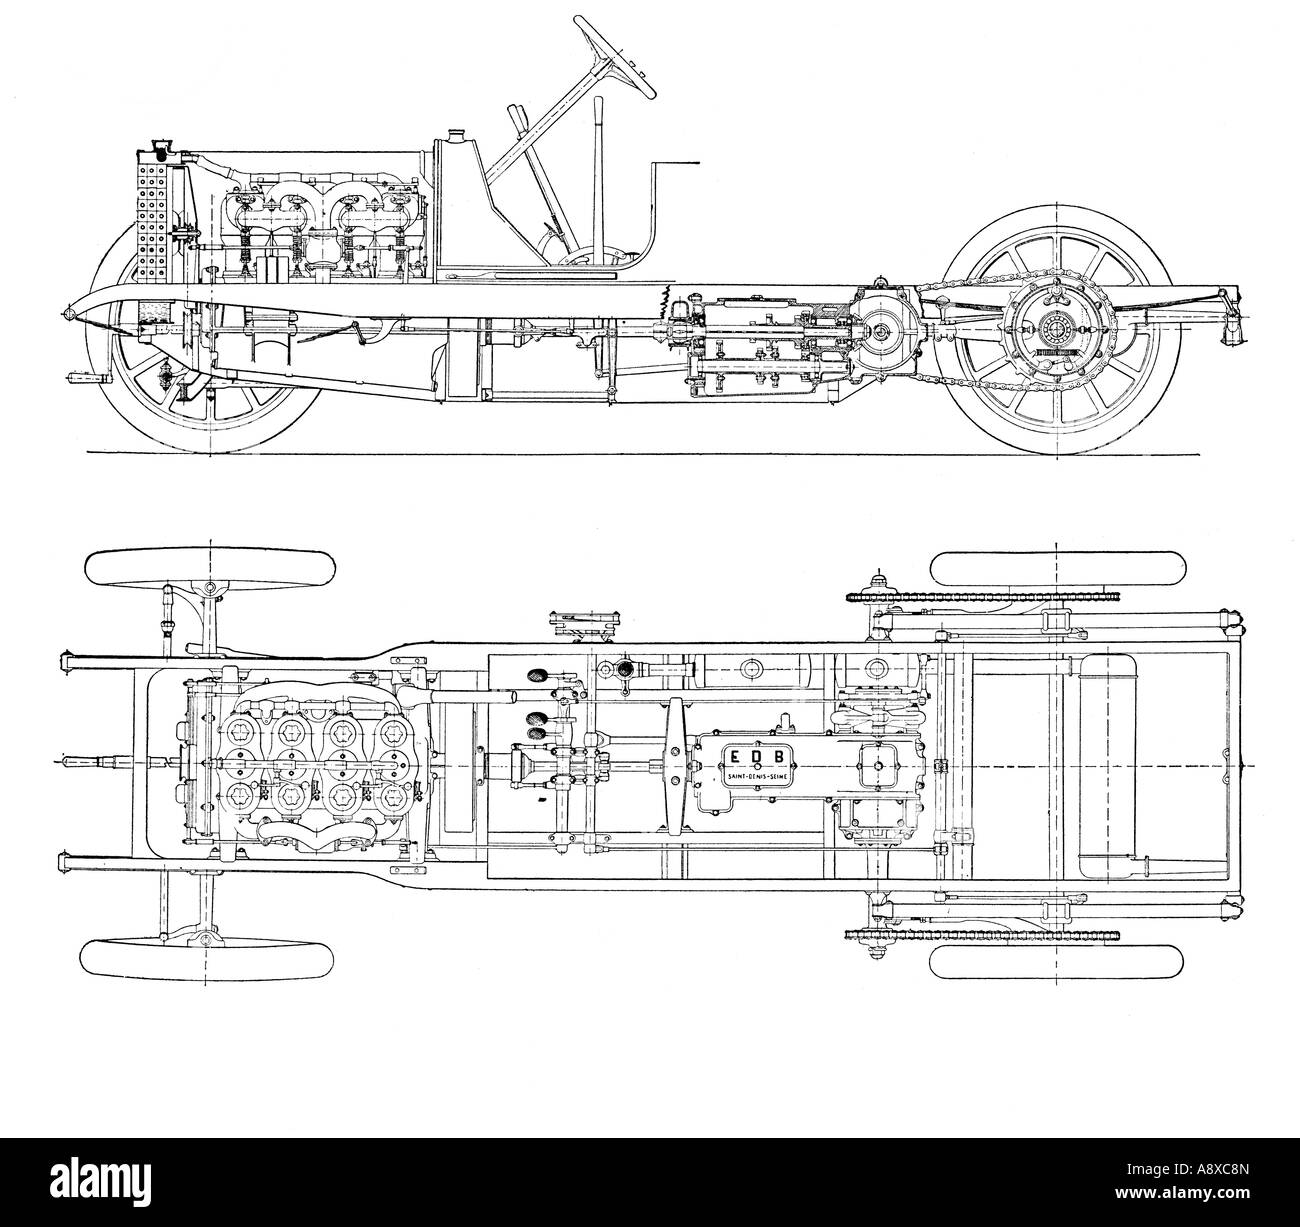 DIAGRAM OF FOUR CYLINDER PETROL ENGINE CAR CHASSIS WITH CHAIN DRIVE - Stock  Image